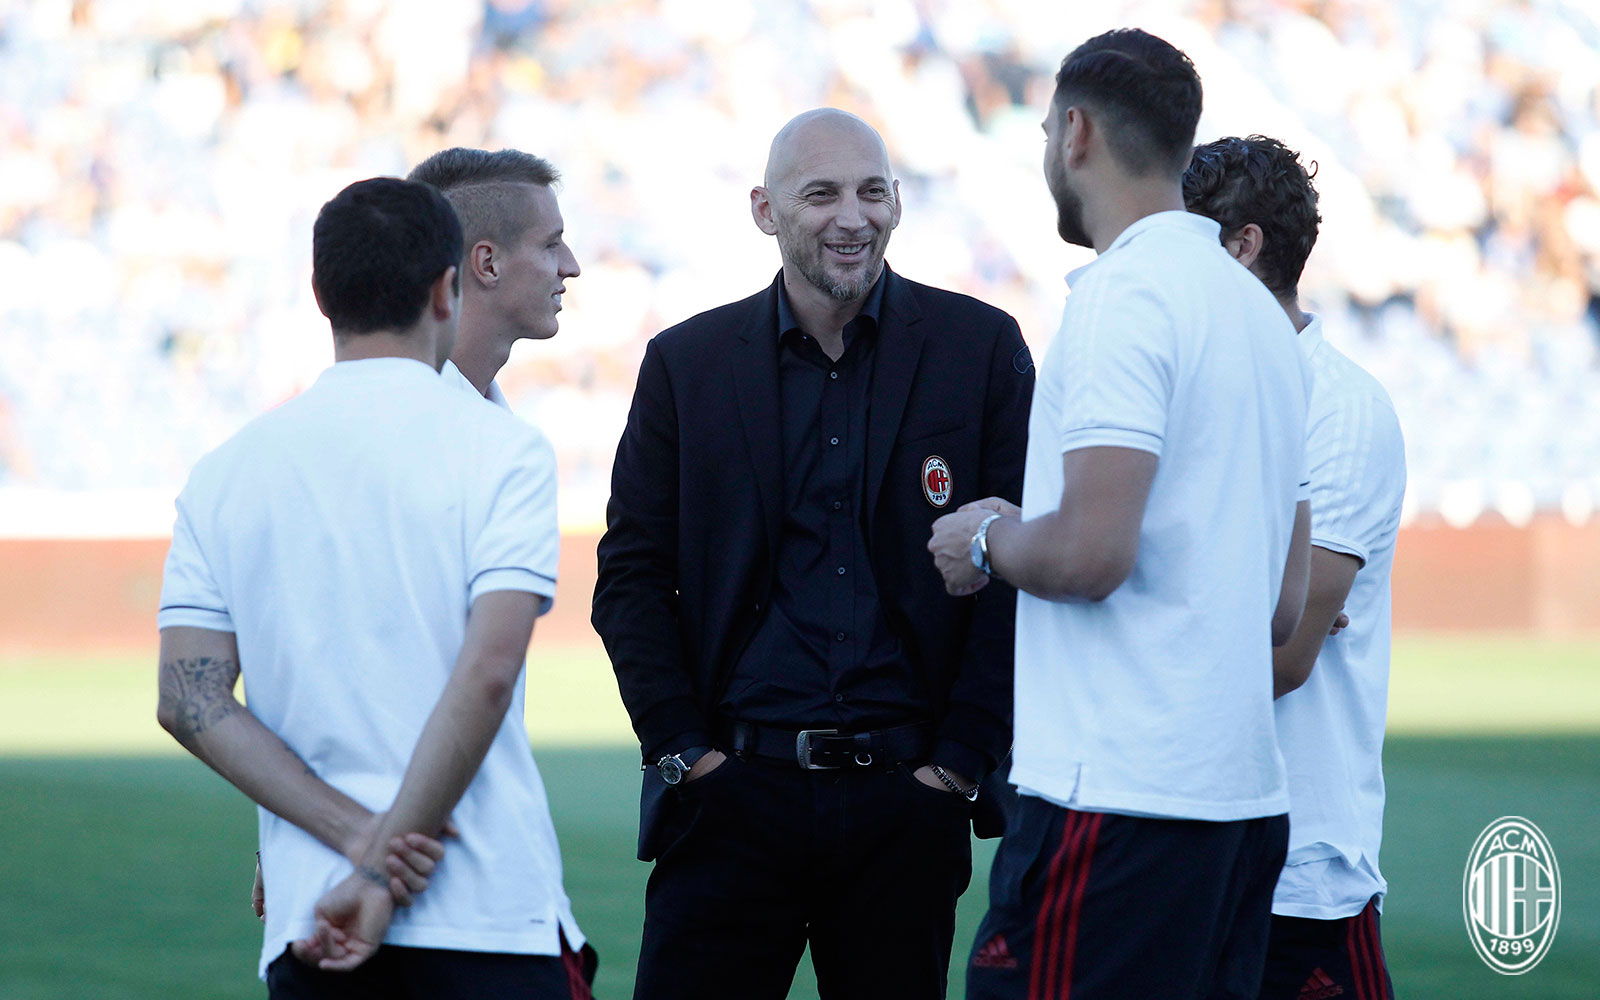 Christian Abbiati talking to Davide Calabria, Andrea Conti, Gianluigi Donnarumma and Manuel Locatelli before Craiova-Milan at Stadionul Municipal (Drobeta-Turnu Severin) on the 27th of July, 2017. (@acmilan.com)